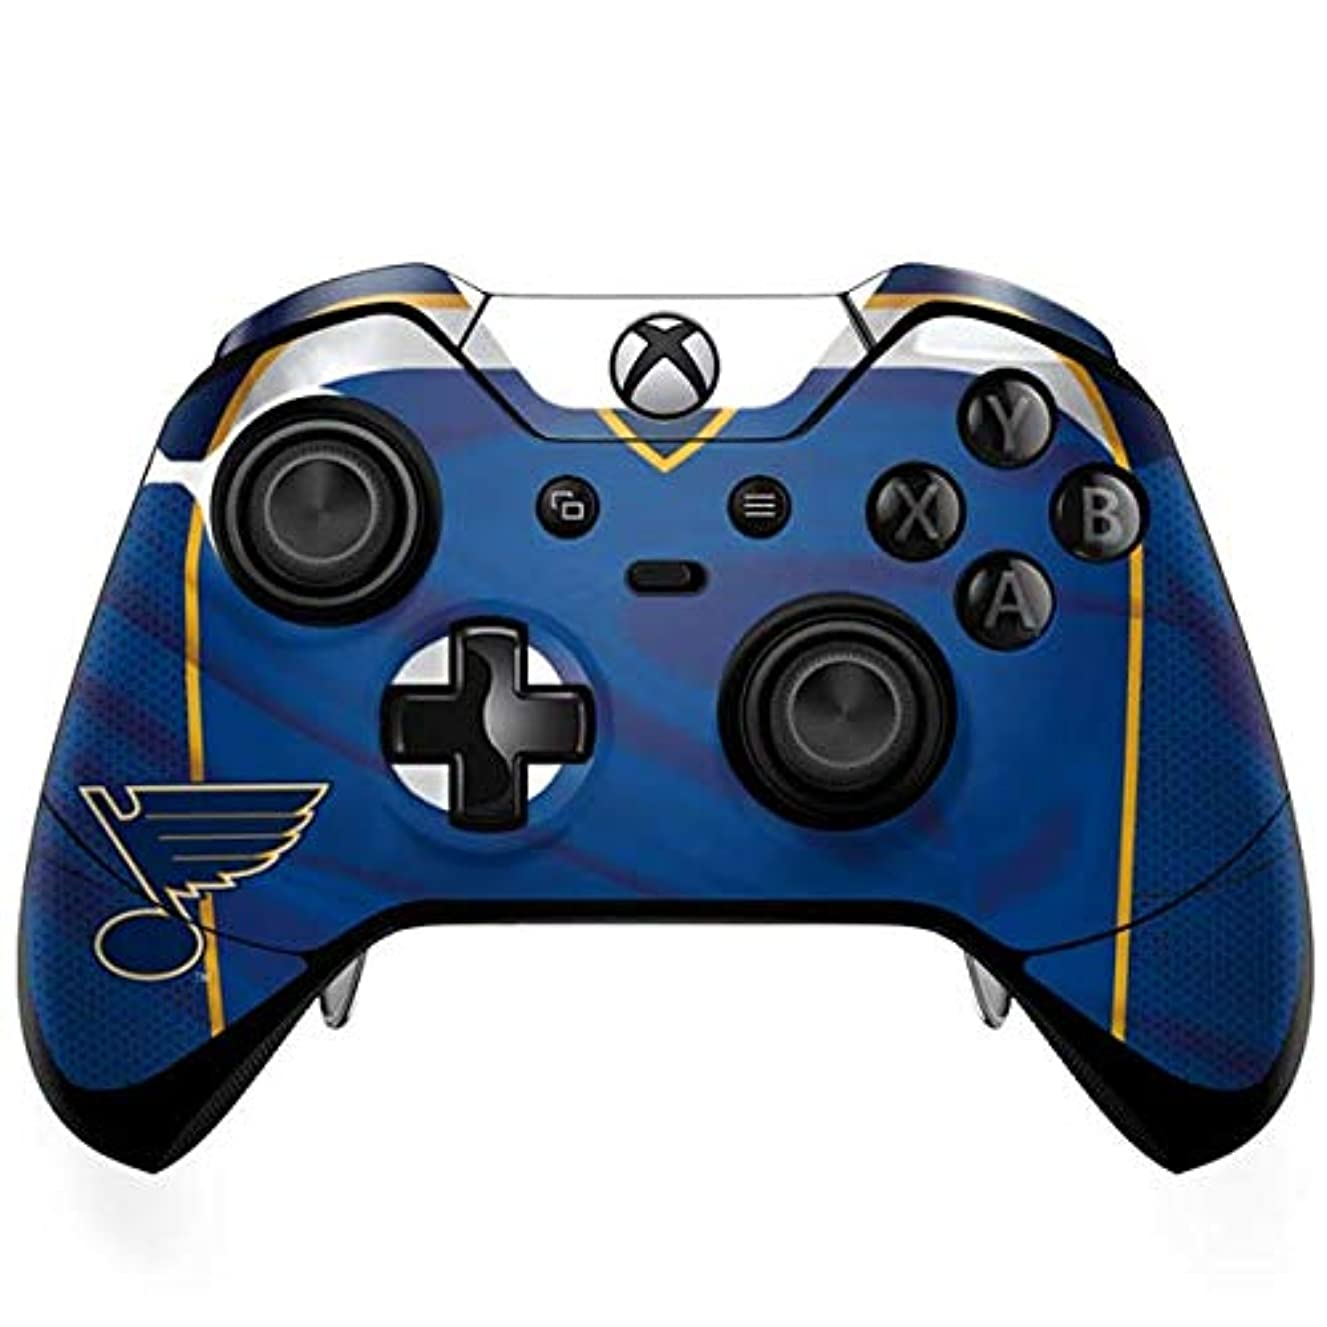 Skinit St. Louis Blues Home Jersey Xbox One Elite Controller Skin - Officially Licensed NHL Gaming Decal - Ultra Thin, Lightweight Vinyl Decal Protection